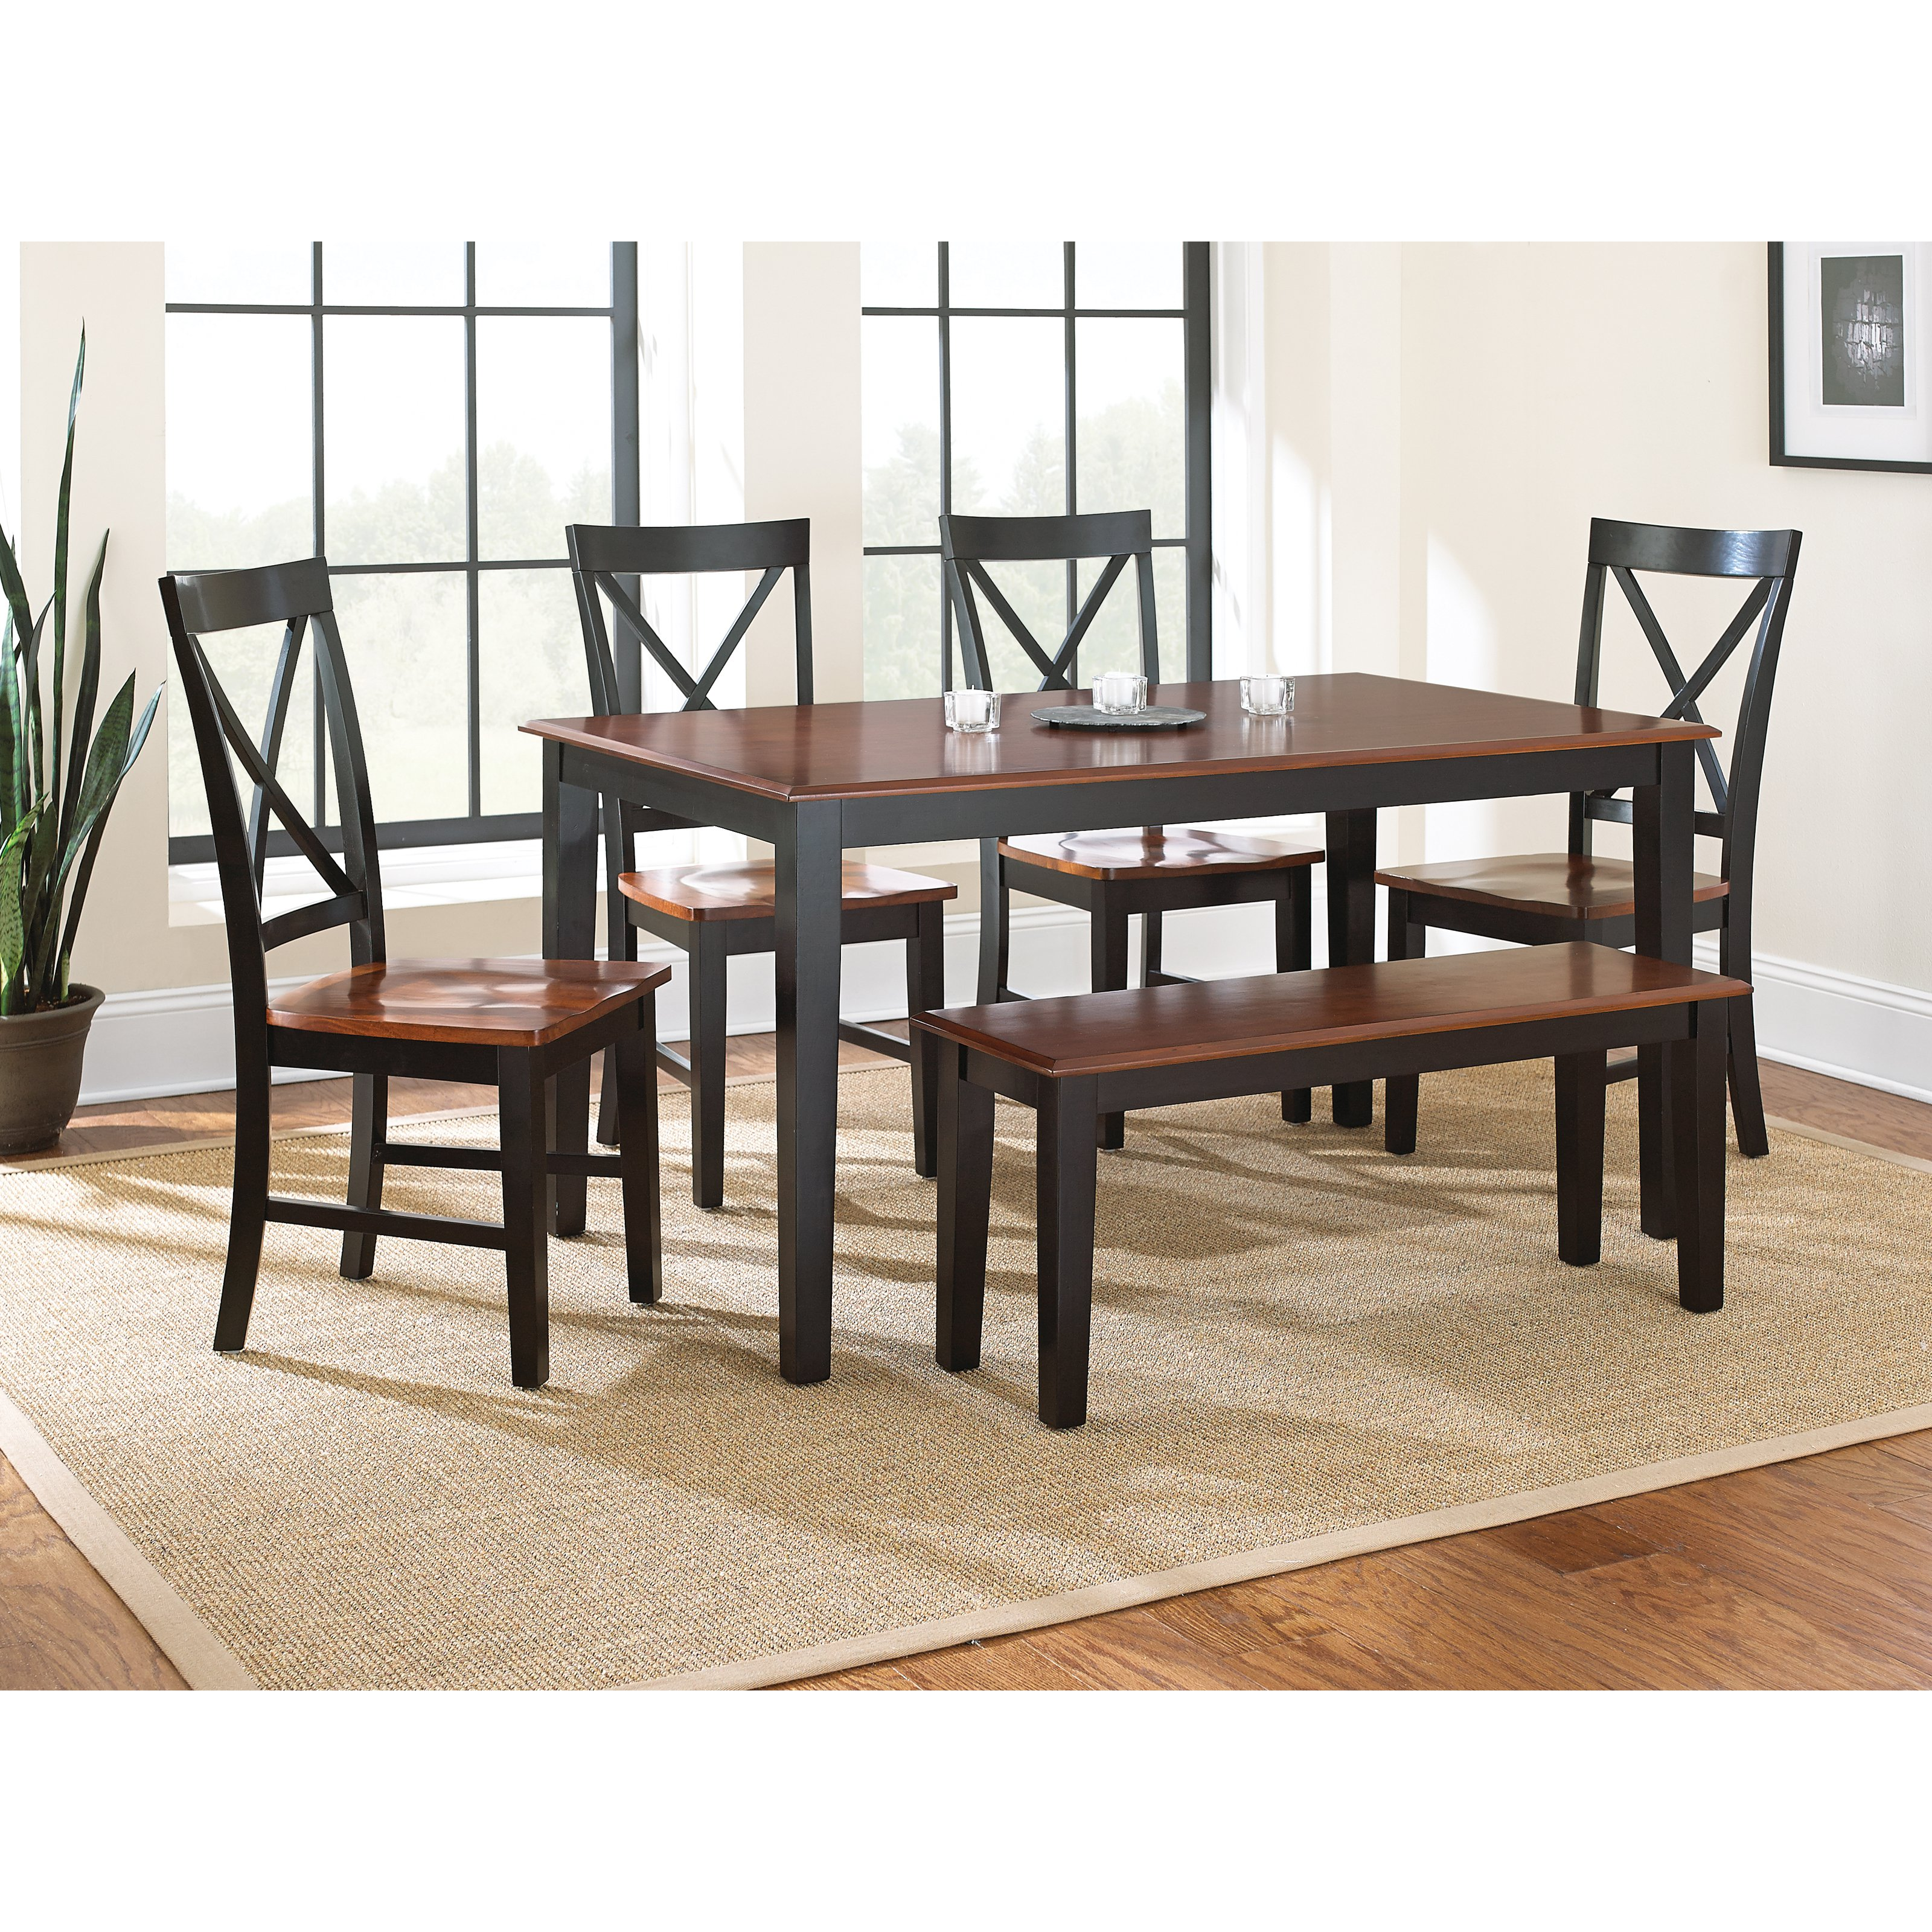 steve silver kingston 6 piece dining table set - Steve Silver Furniture